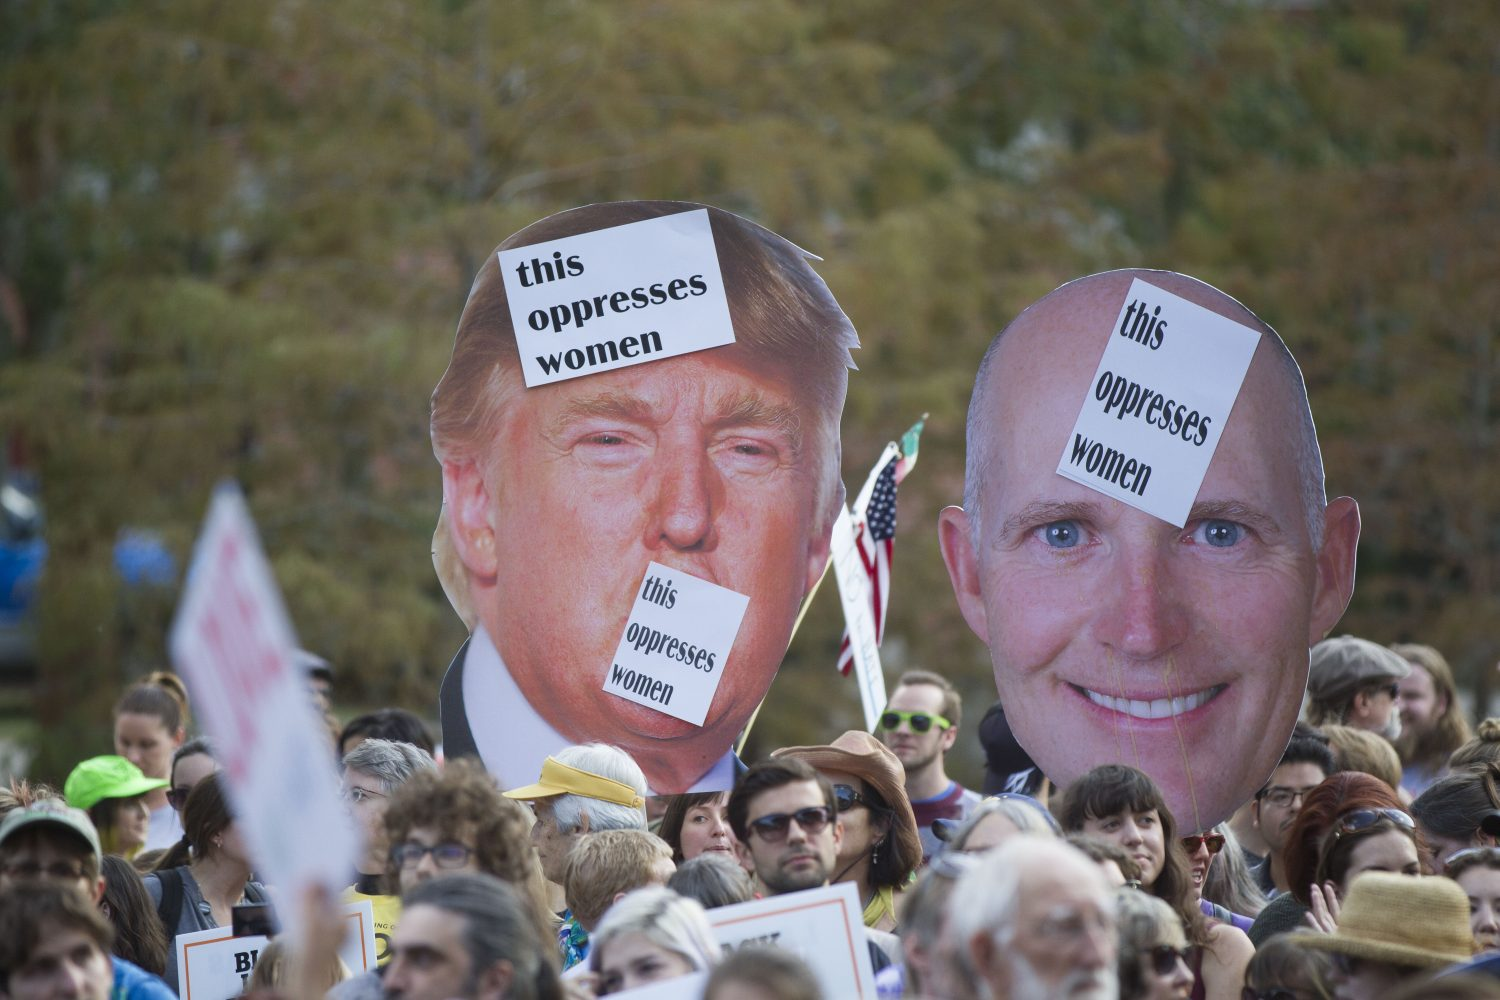 Protestors hold cutouts of Donald Trump and Florida Gov. Rick Scott as they gather outside the University of Florida's football stadium. (Michael Stone/WUFT News)